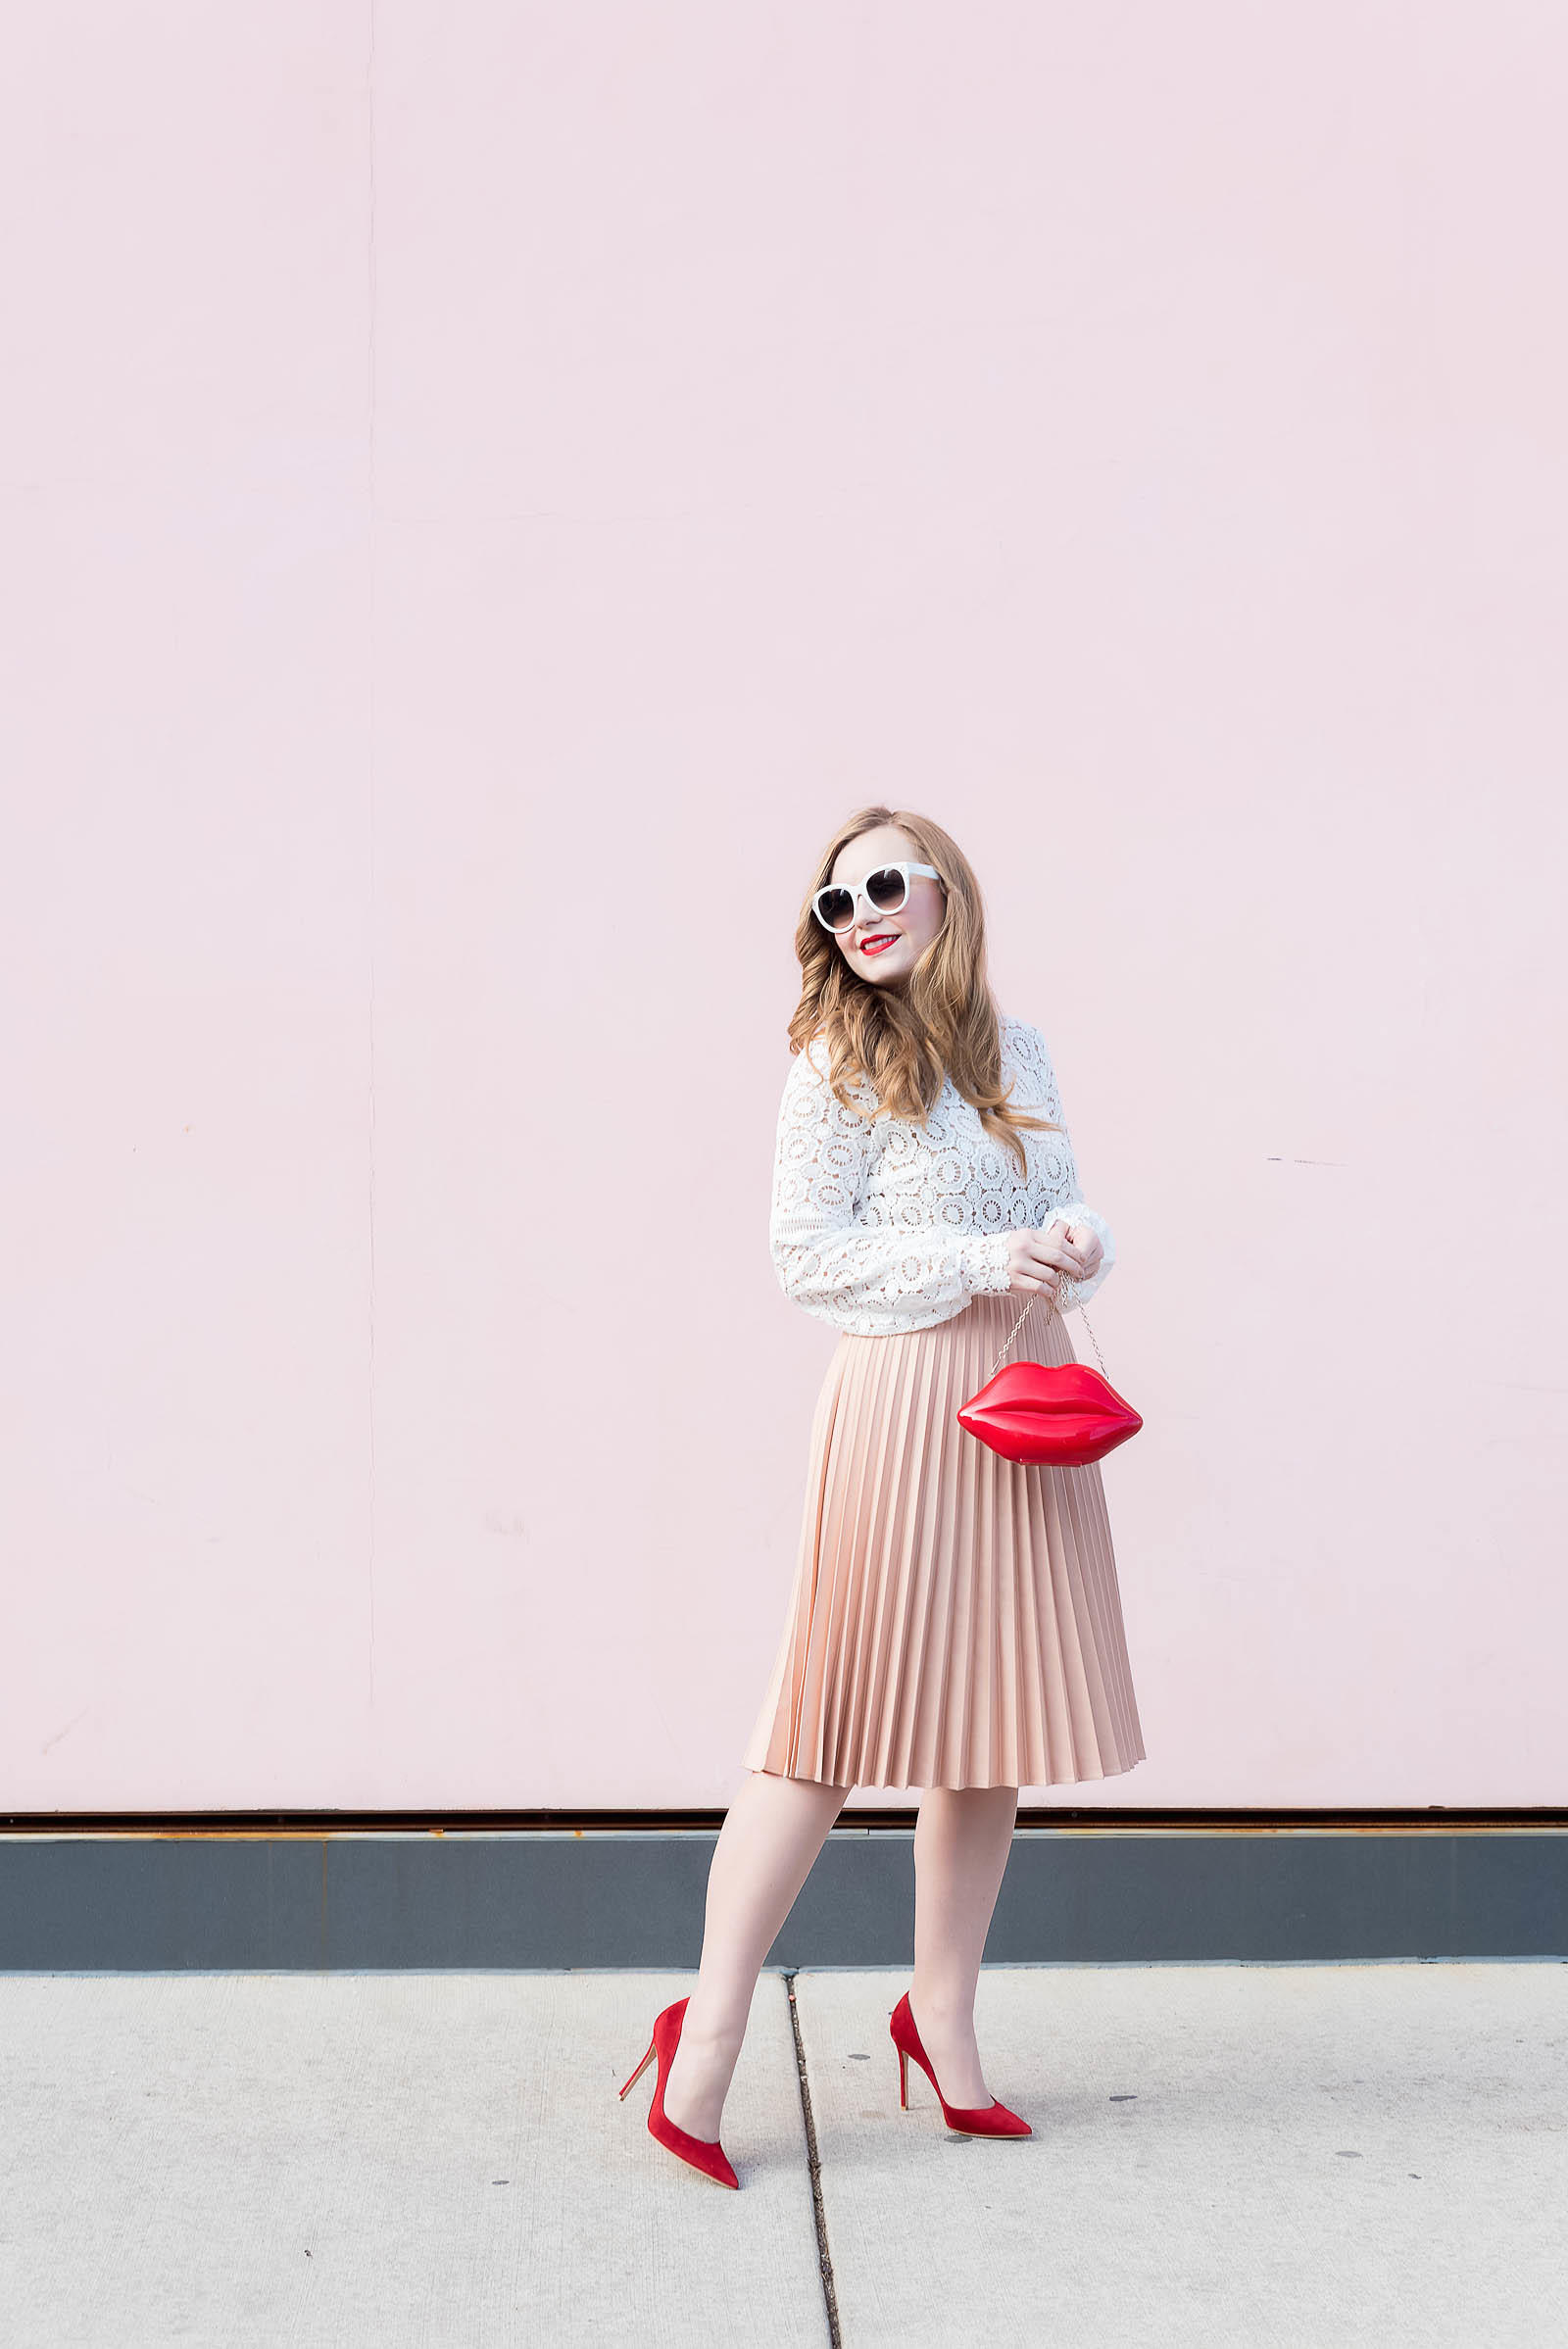 White Lace Pink Pleats Red Pumps Lips Valentine's Day Outfit